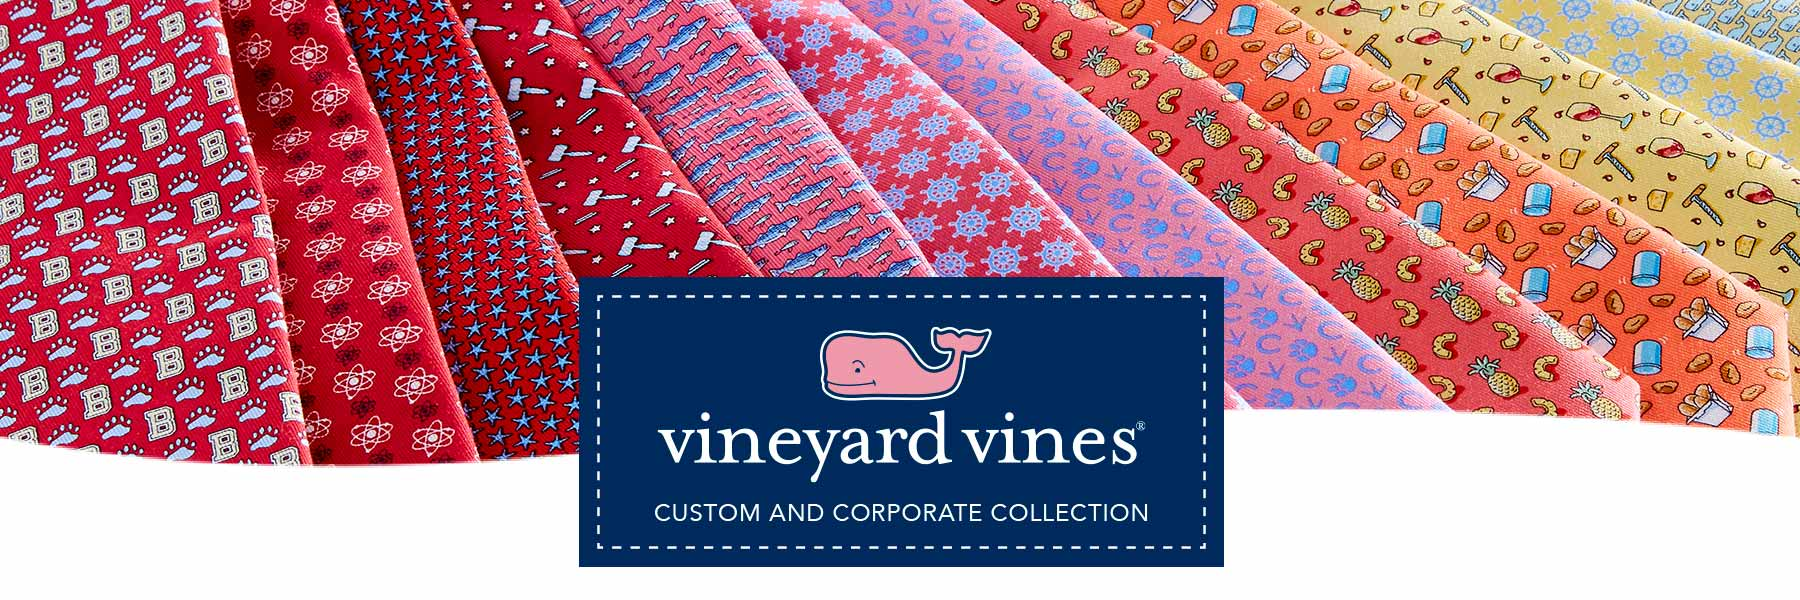 vineyard vines Custom and Corporate Collection